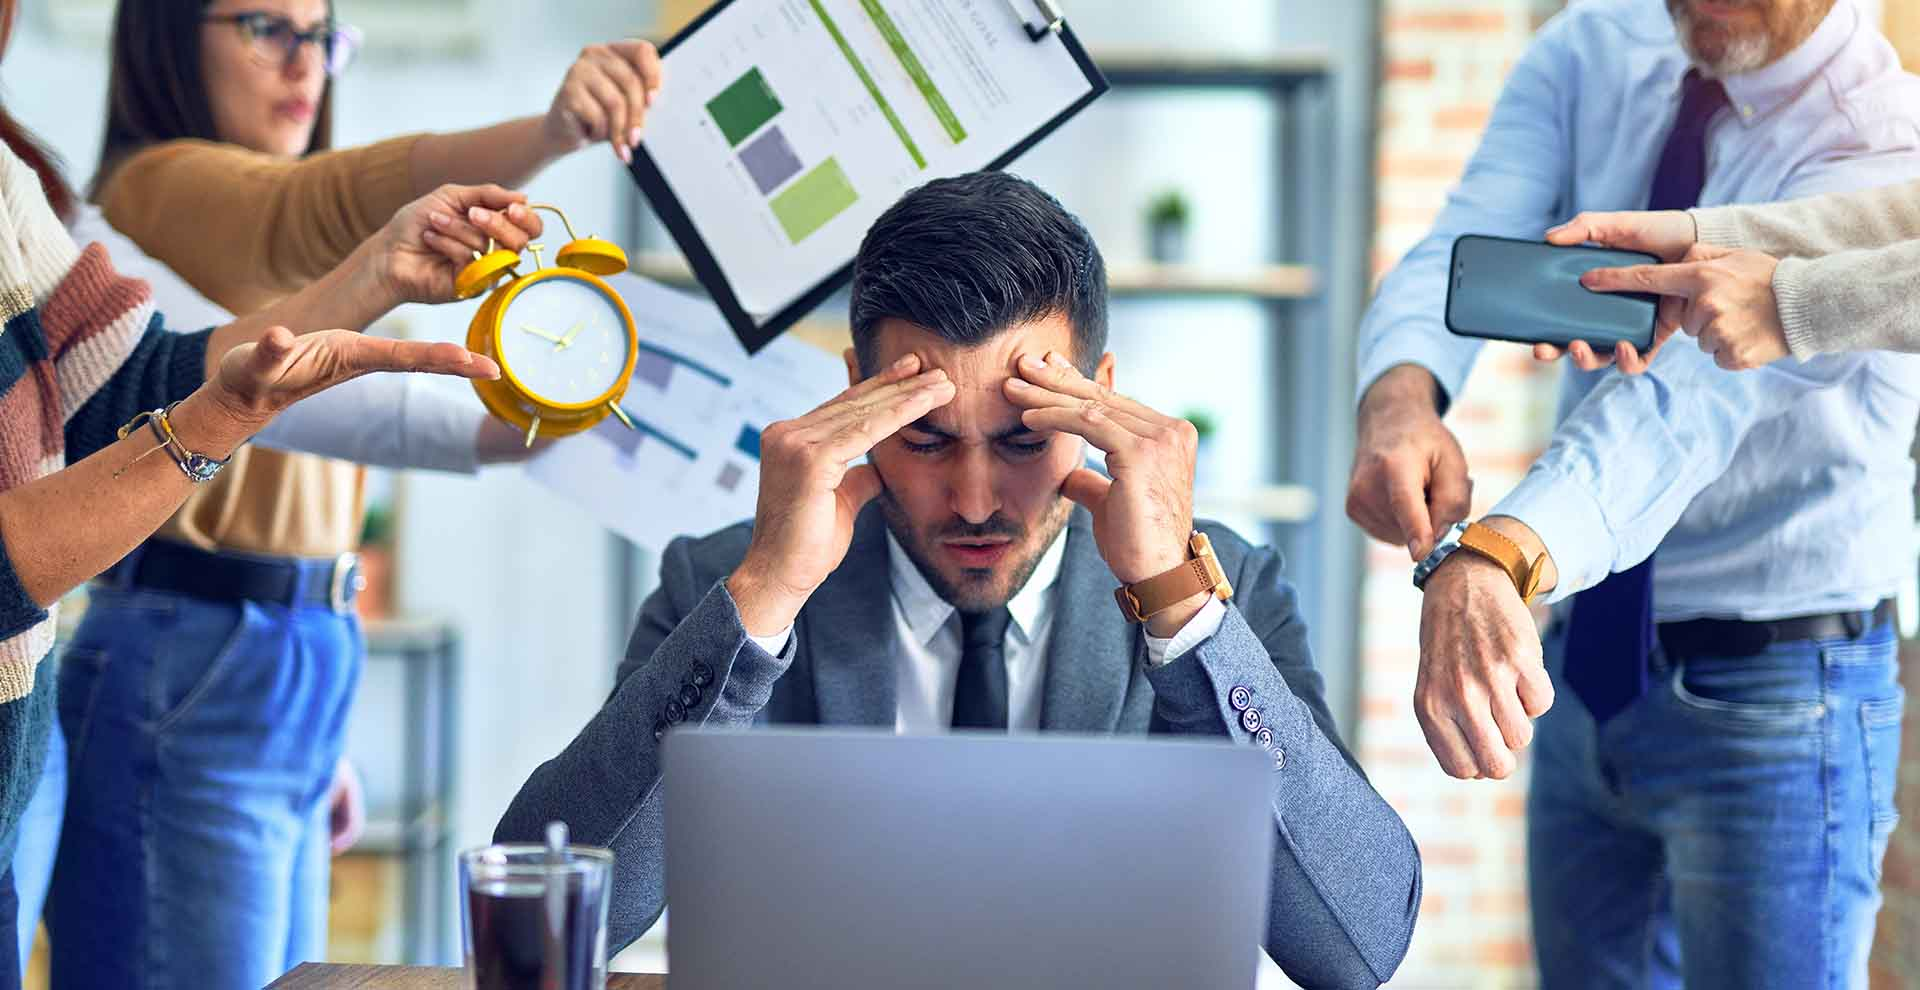 gestire lo stress ecco tutte le strategie scientificamente valide caos